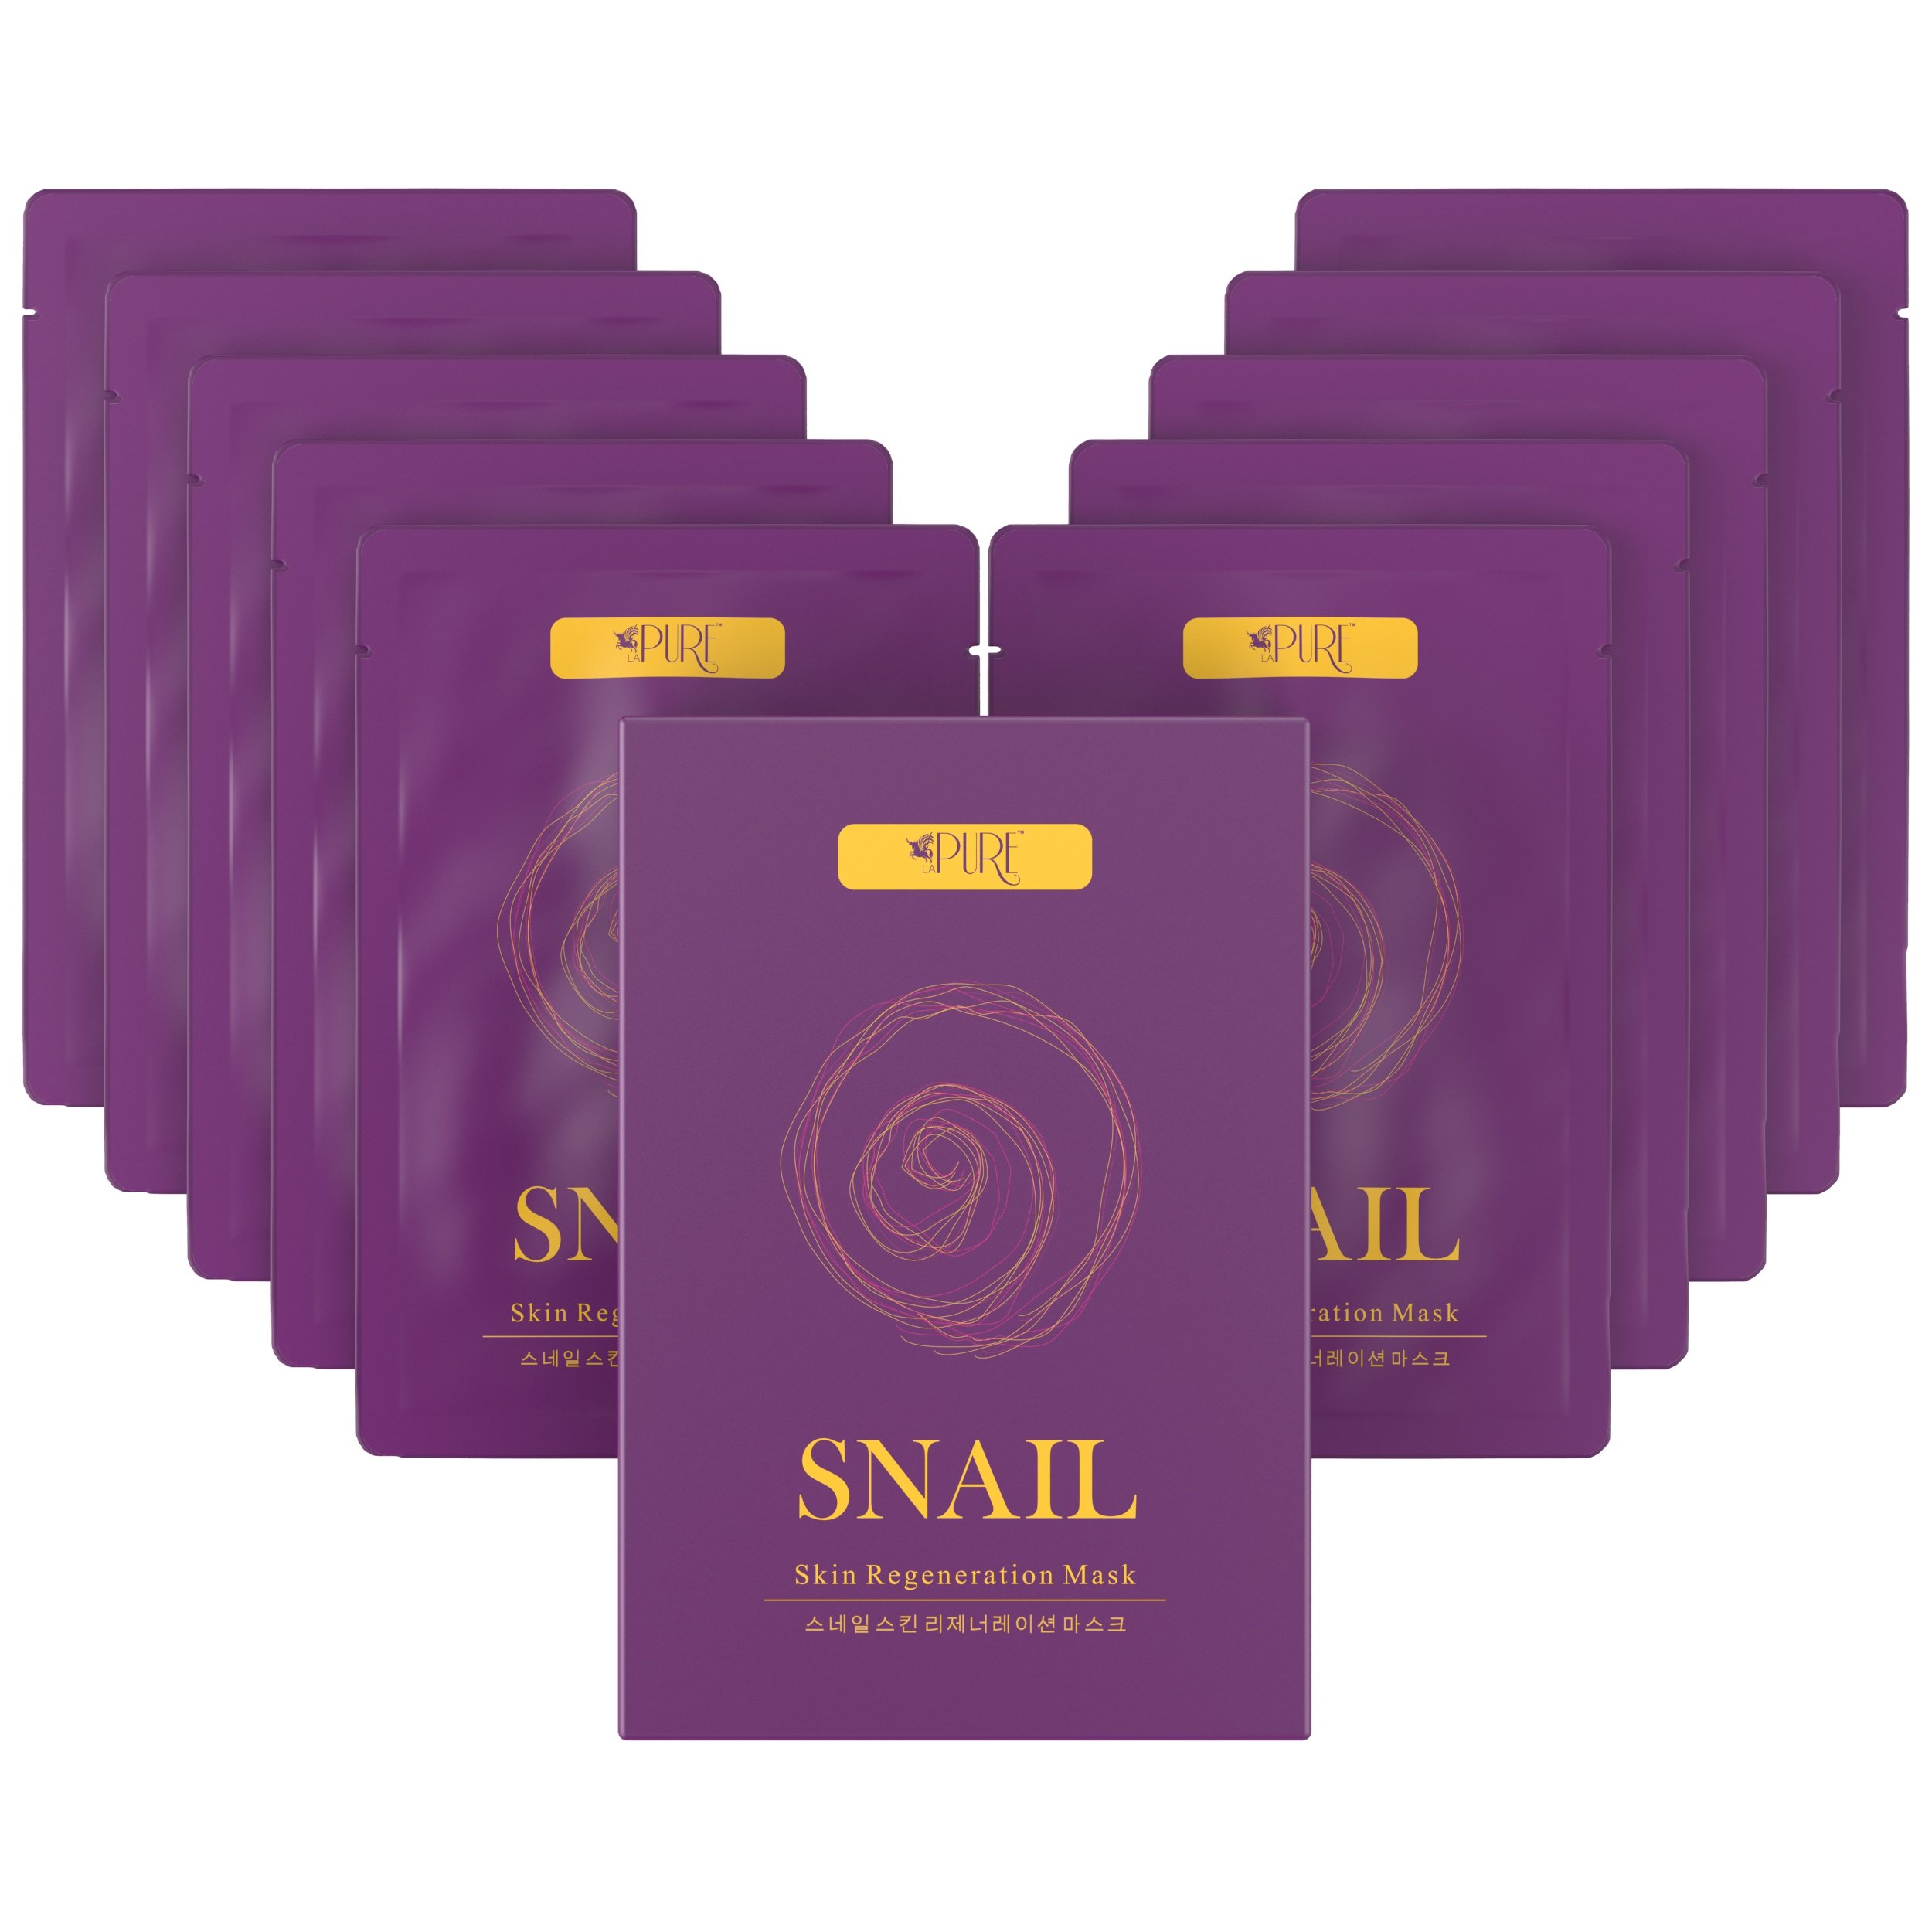 LA PURE Snail Regeneration Korean Facial Mask (pack of 10) 100% Pure Cotton Cupra Sheet Mask, Anti-Aging, Anti-Wrinkle, Hydration Mask, Snail Secretion Filtrate 7000ppm For Deep Moisturizing